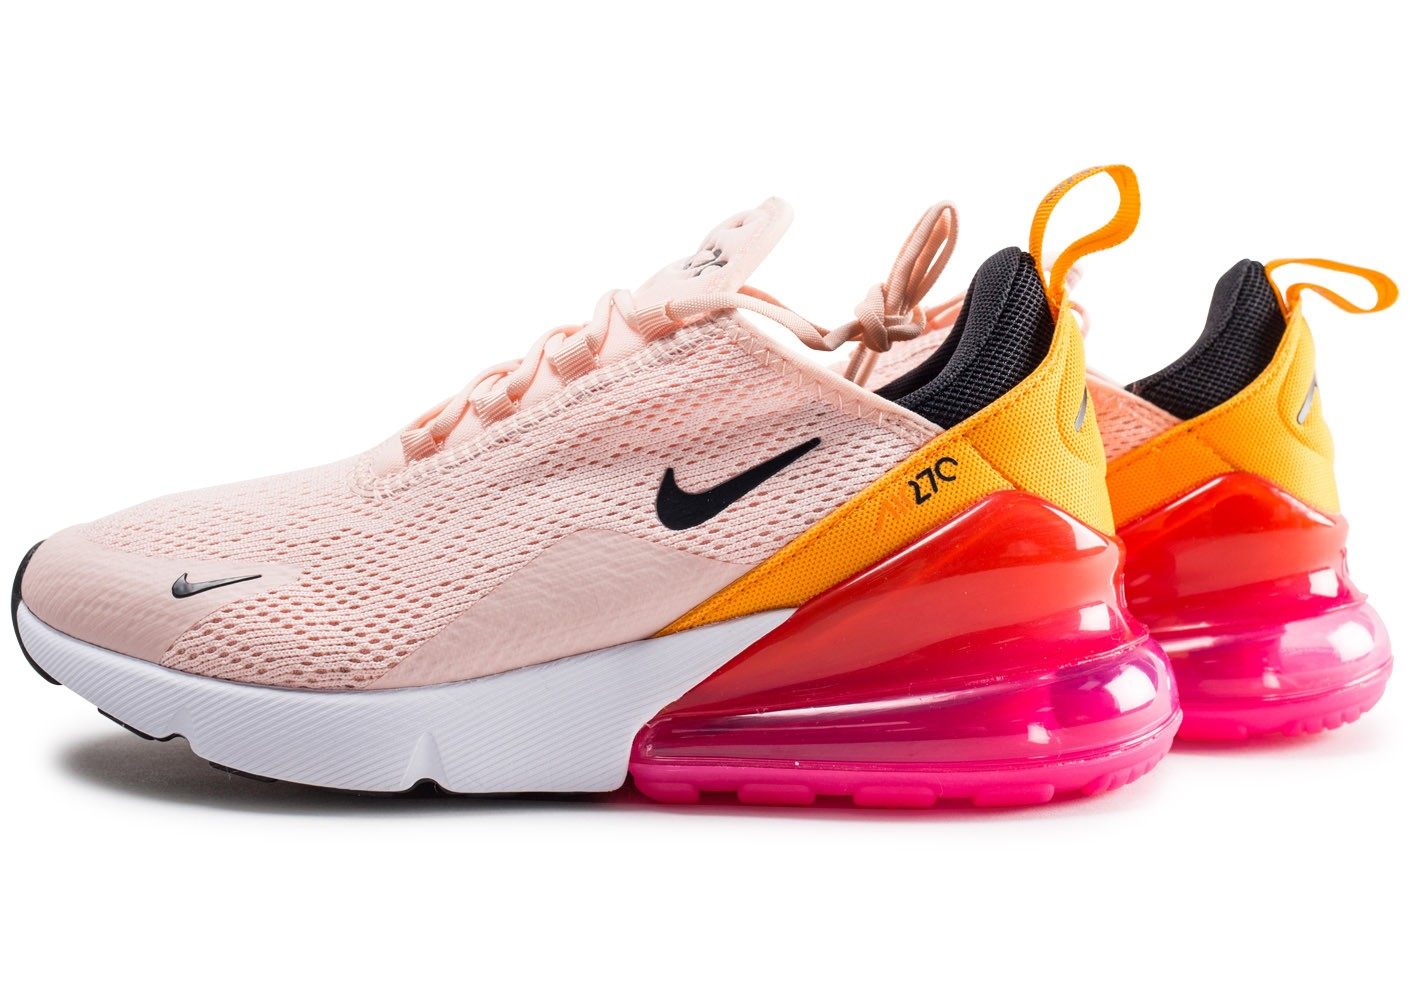 Nike Air Max 270 rose et orange femme - Chaussures Baskets ...